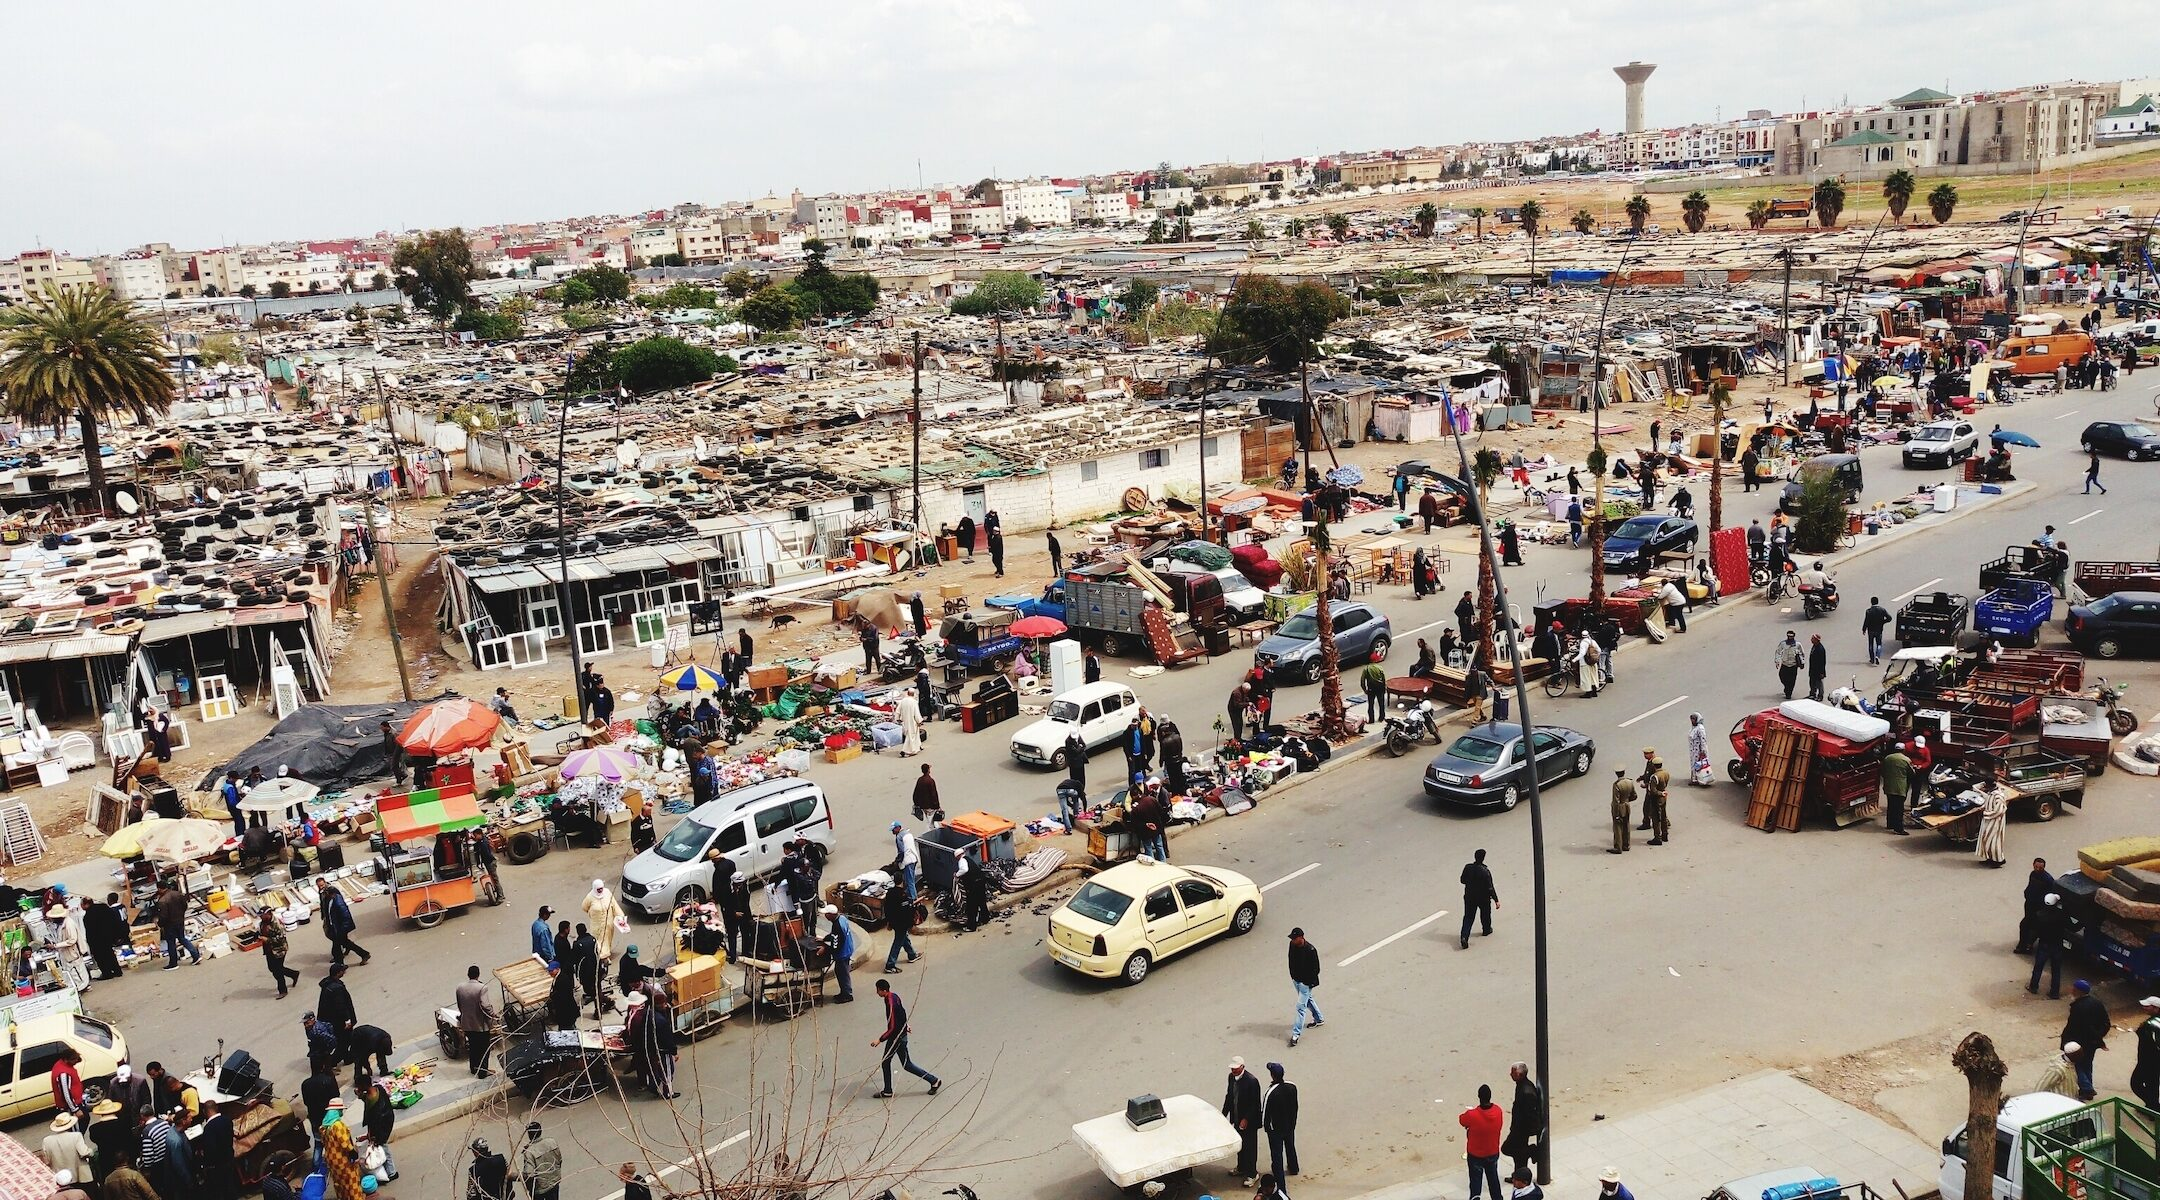 A view of Rabat, Morocco's capital city. (Getty Images)